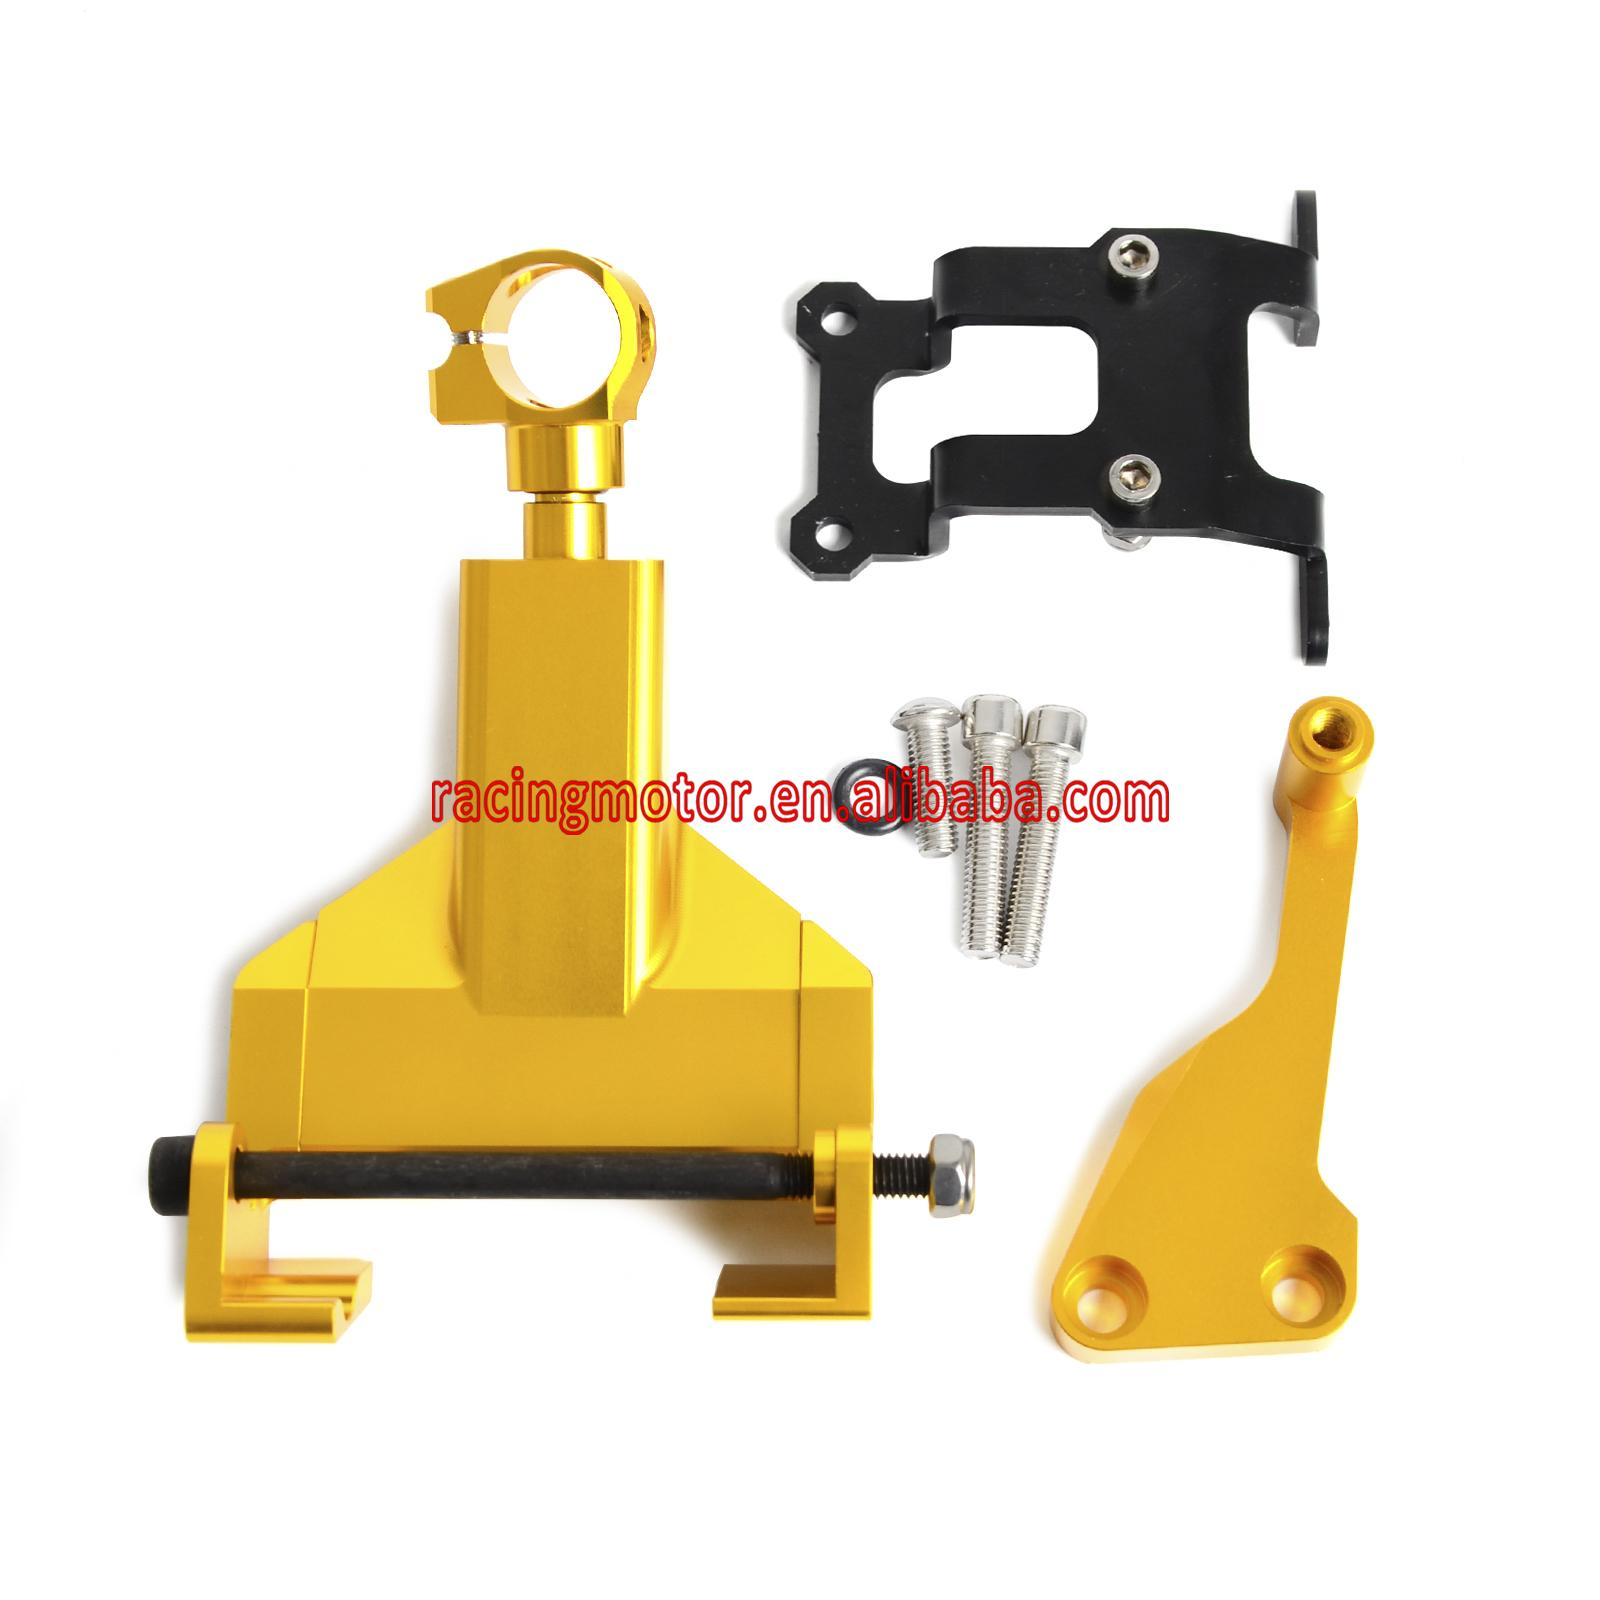 ФОТО Gold Motorcycle Stablizer Damper Mounting Bracket Kit For Yamaha MT-07 MT07 MOTO CAGE 2014 2015 2016